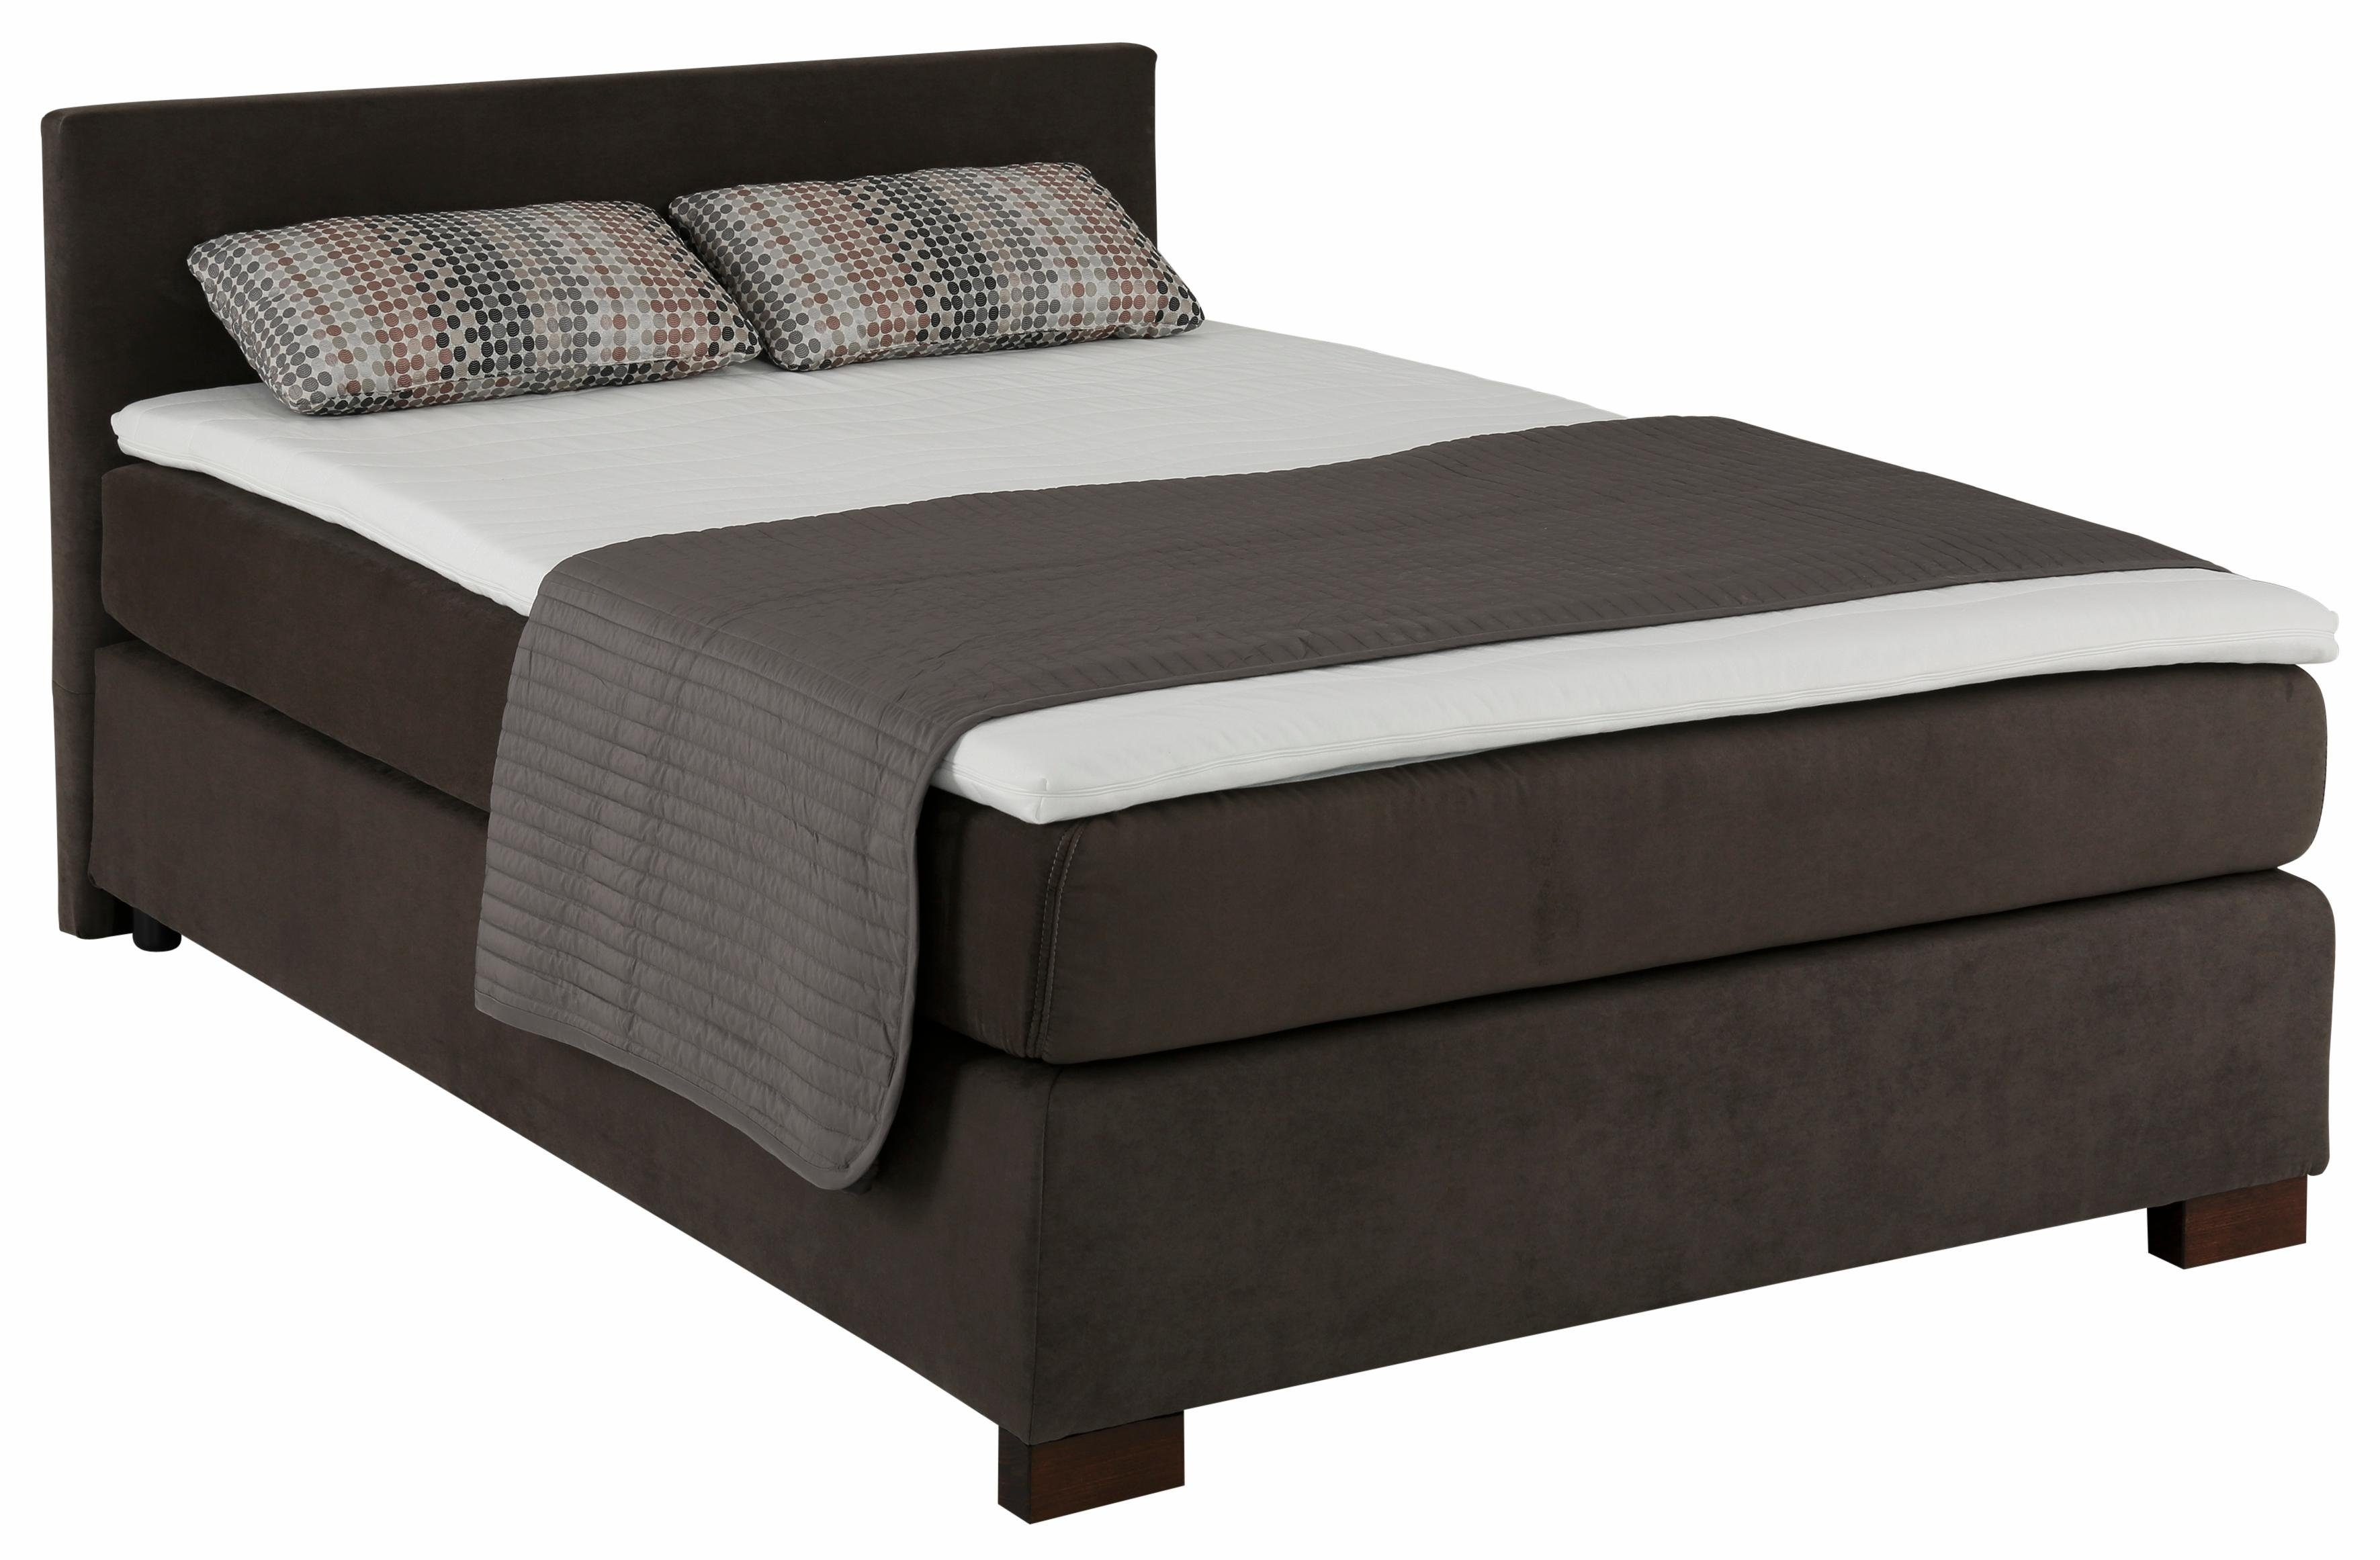 topmatras 90x200 boxspring incl topmatras en kussens grijs with topmatras 90x200 trendy. Black Bedroom Furniture Sets. Home Design Ideas